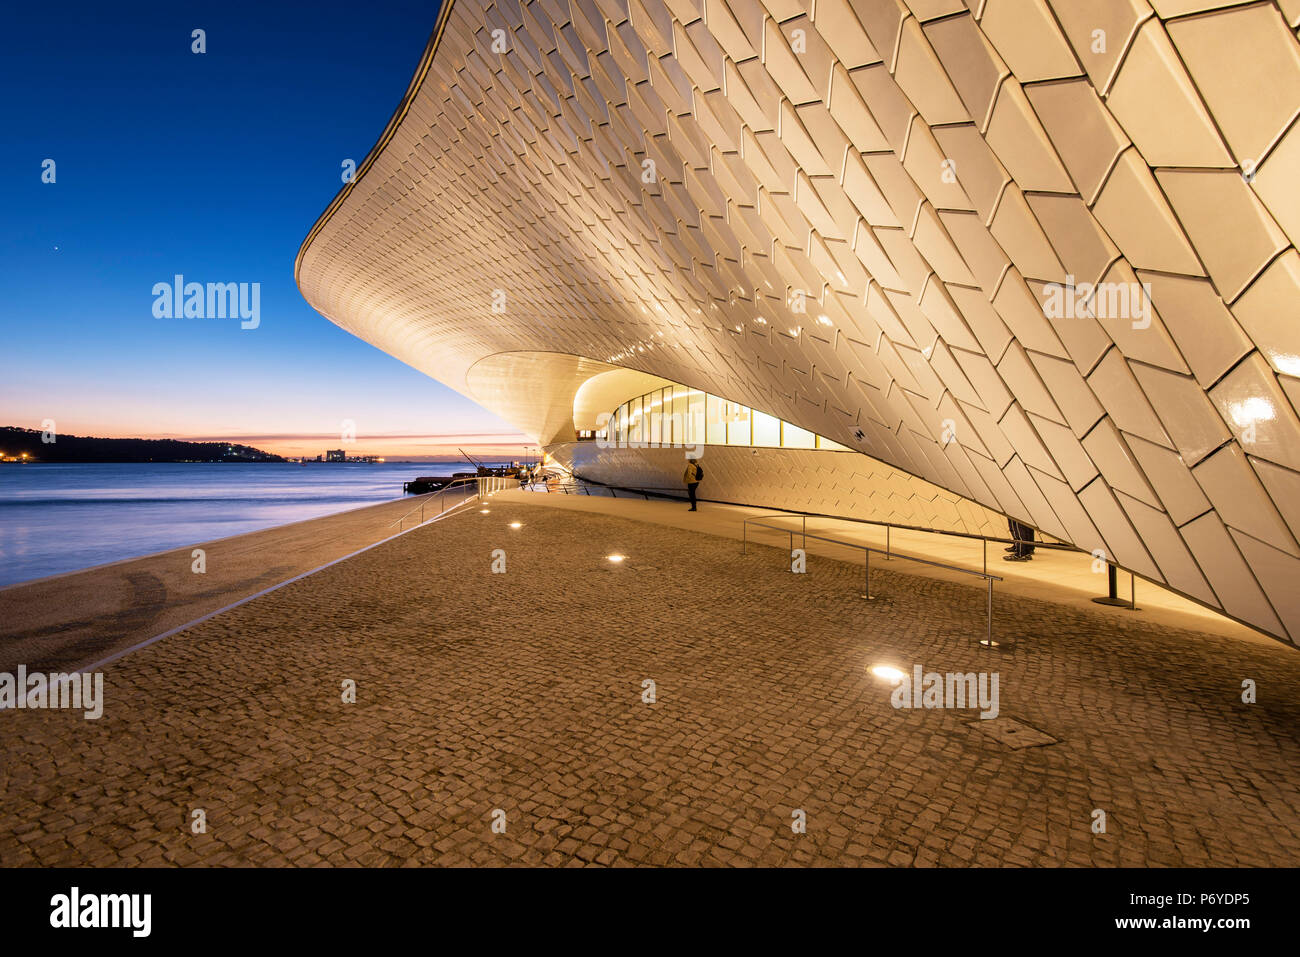 The MAAT (Museum of Art, Architecture and Technology), bordering the Tagus river, was designed by British architect Amanda Levete. Lisbon, Portugal - Stock Image